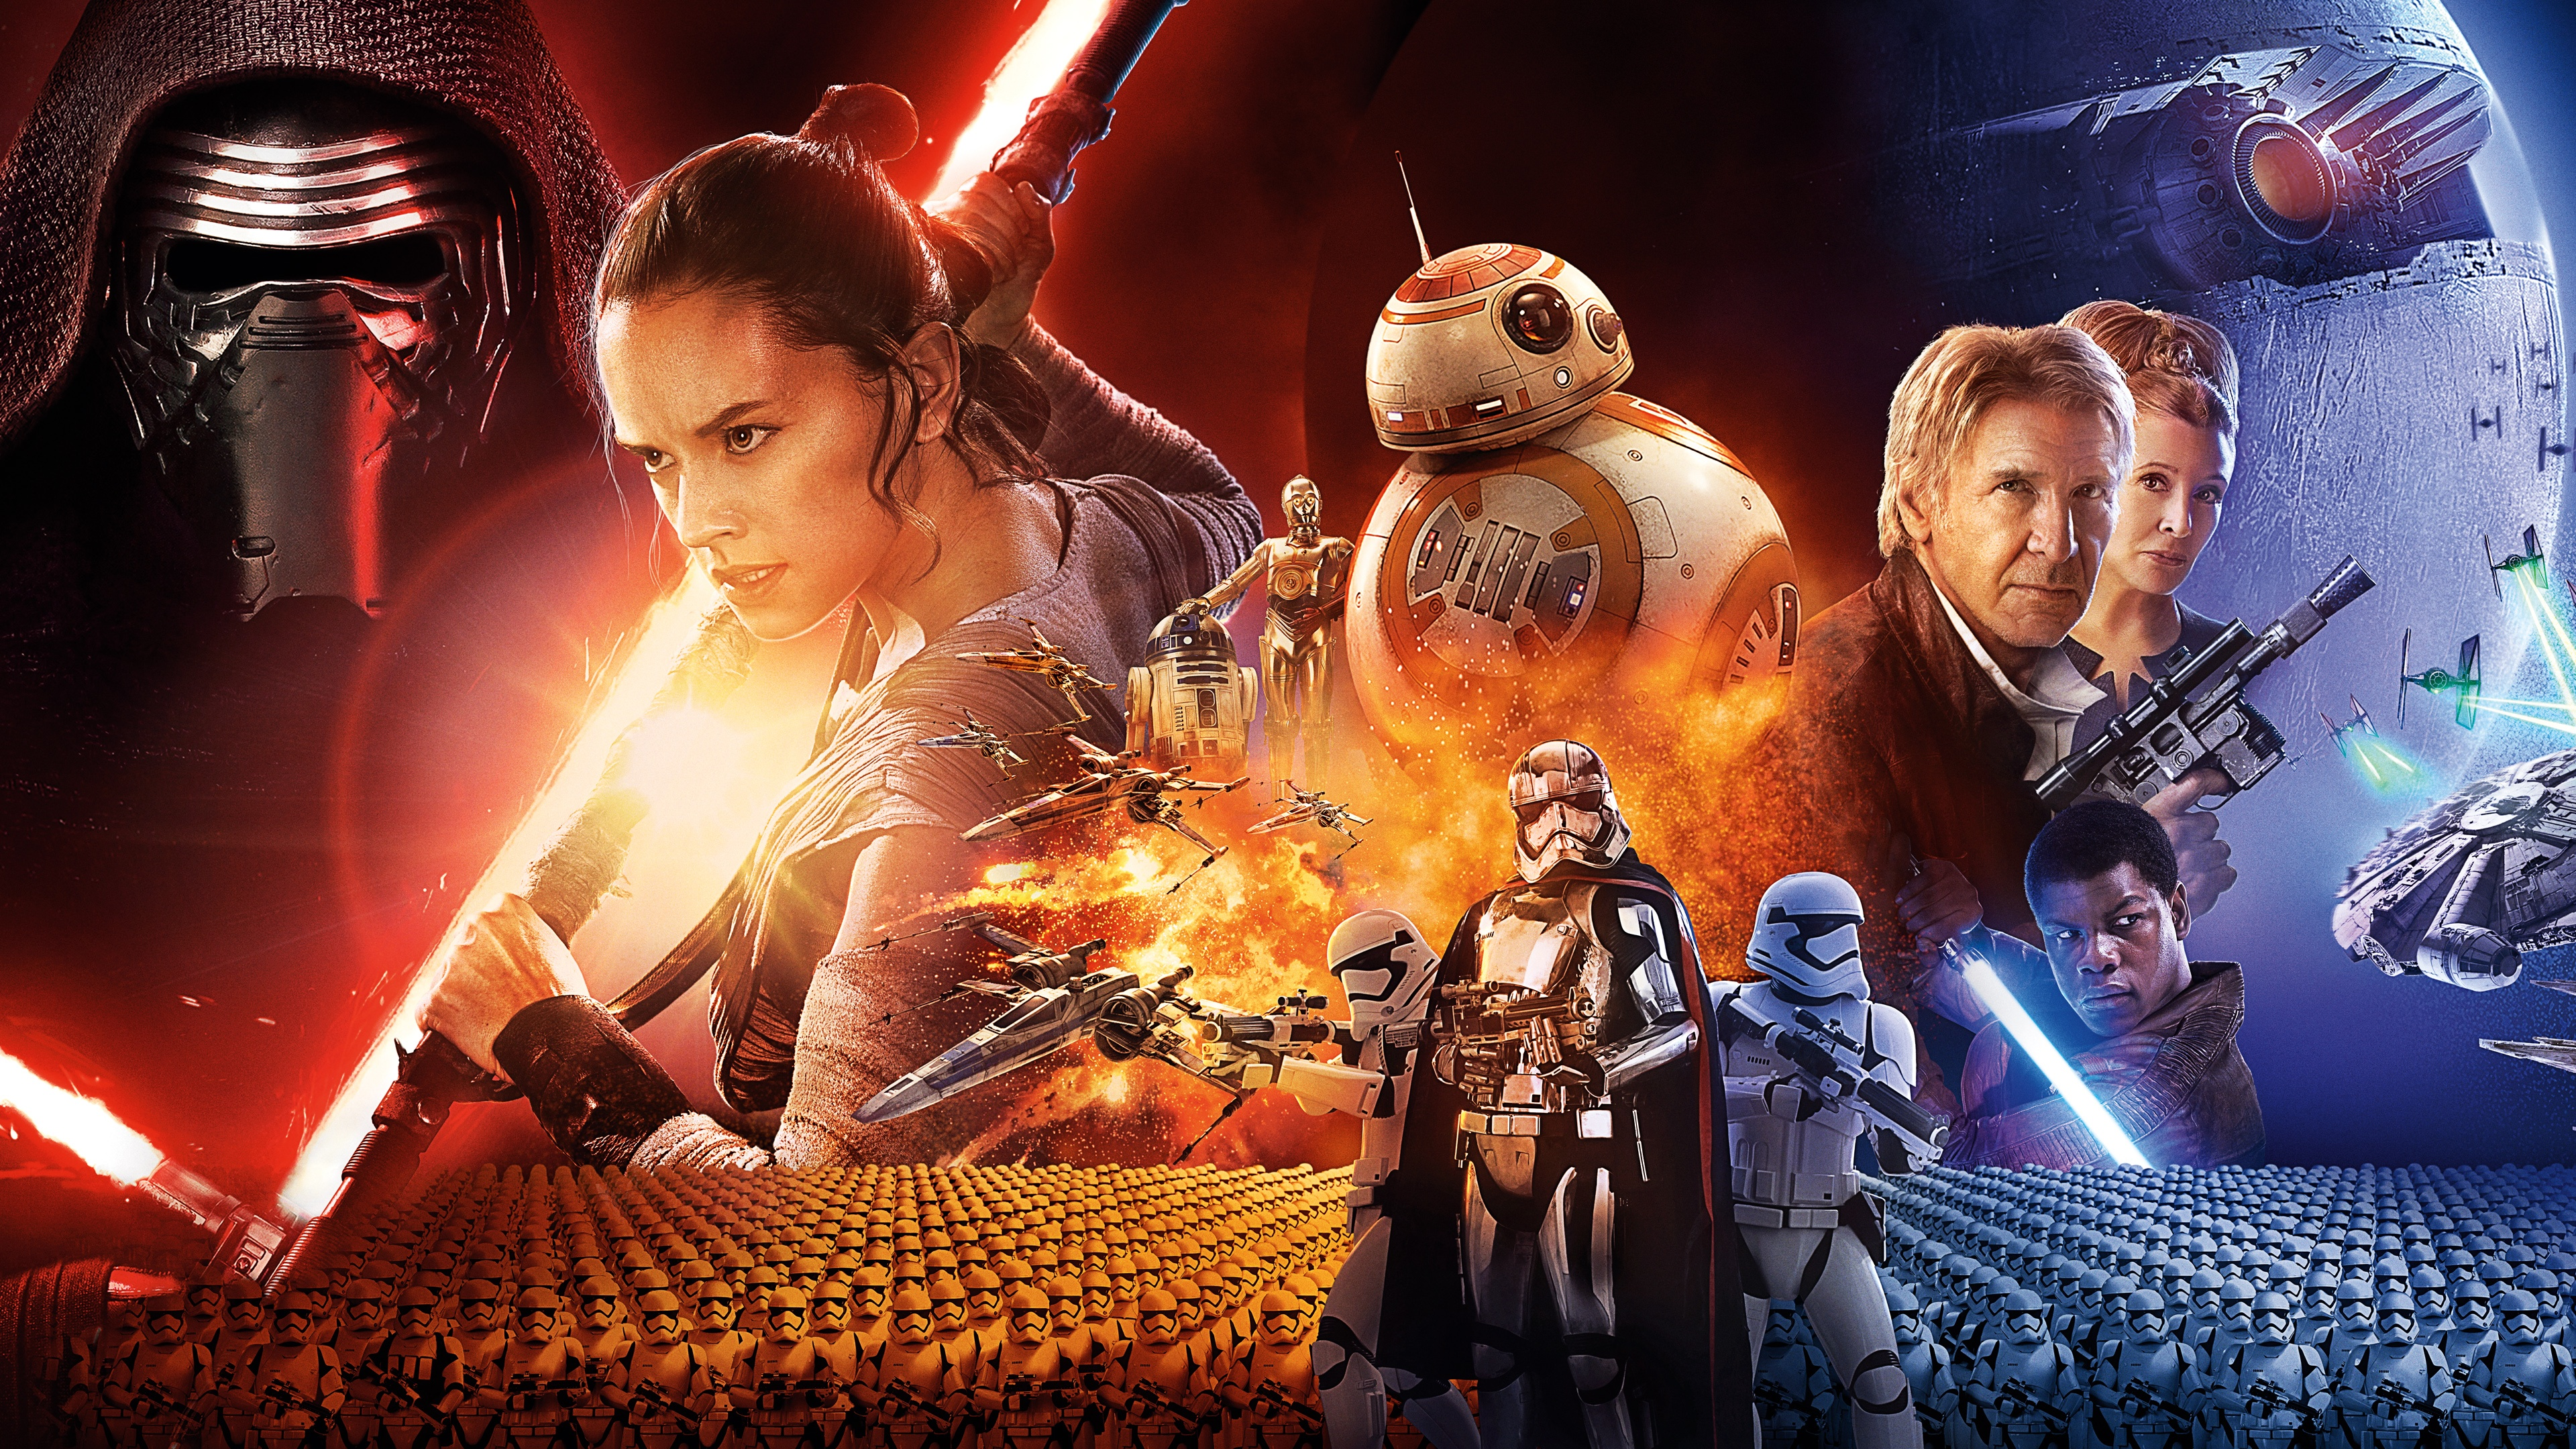 jj abrams star wars the force awakens wallpapers in jpg format for